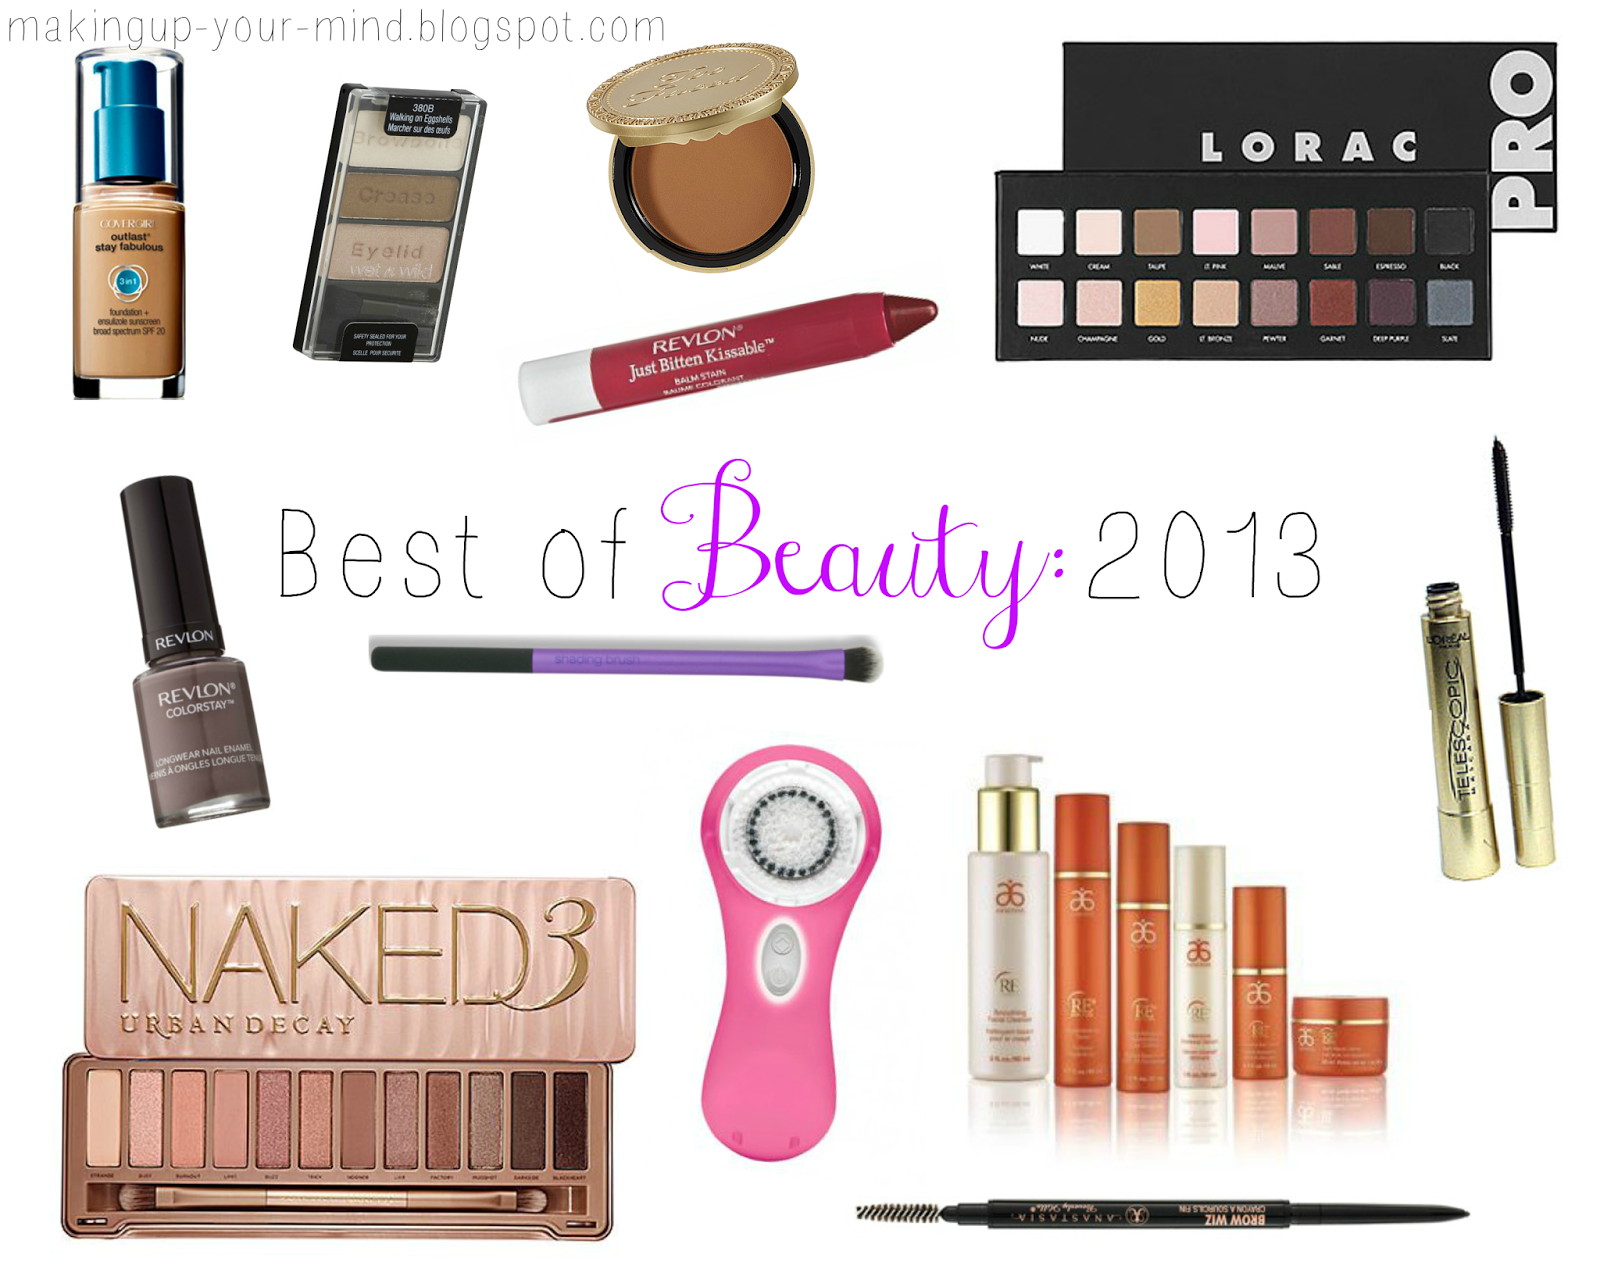 Makeup Your Mind's Best of Beauty 2013